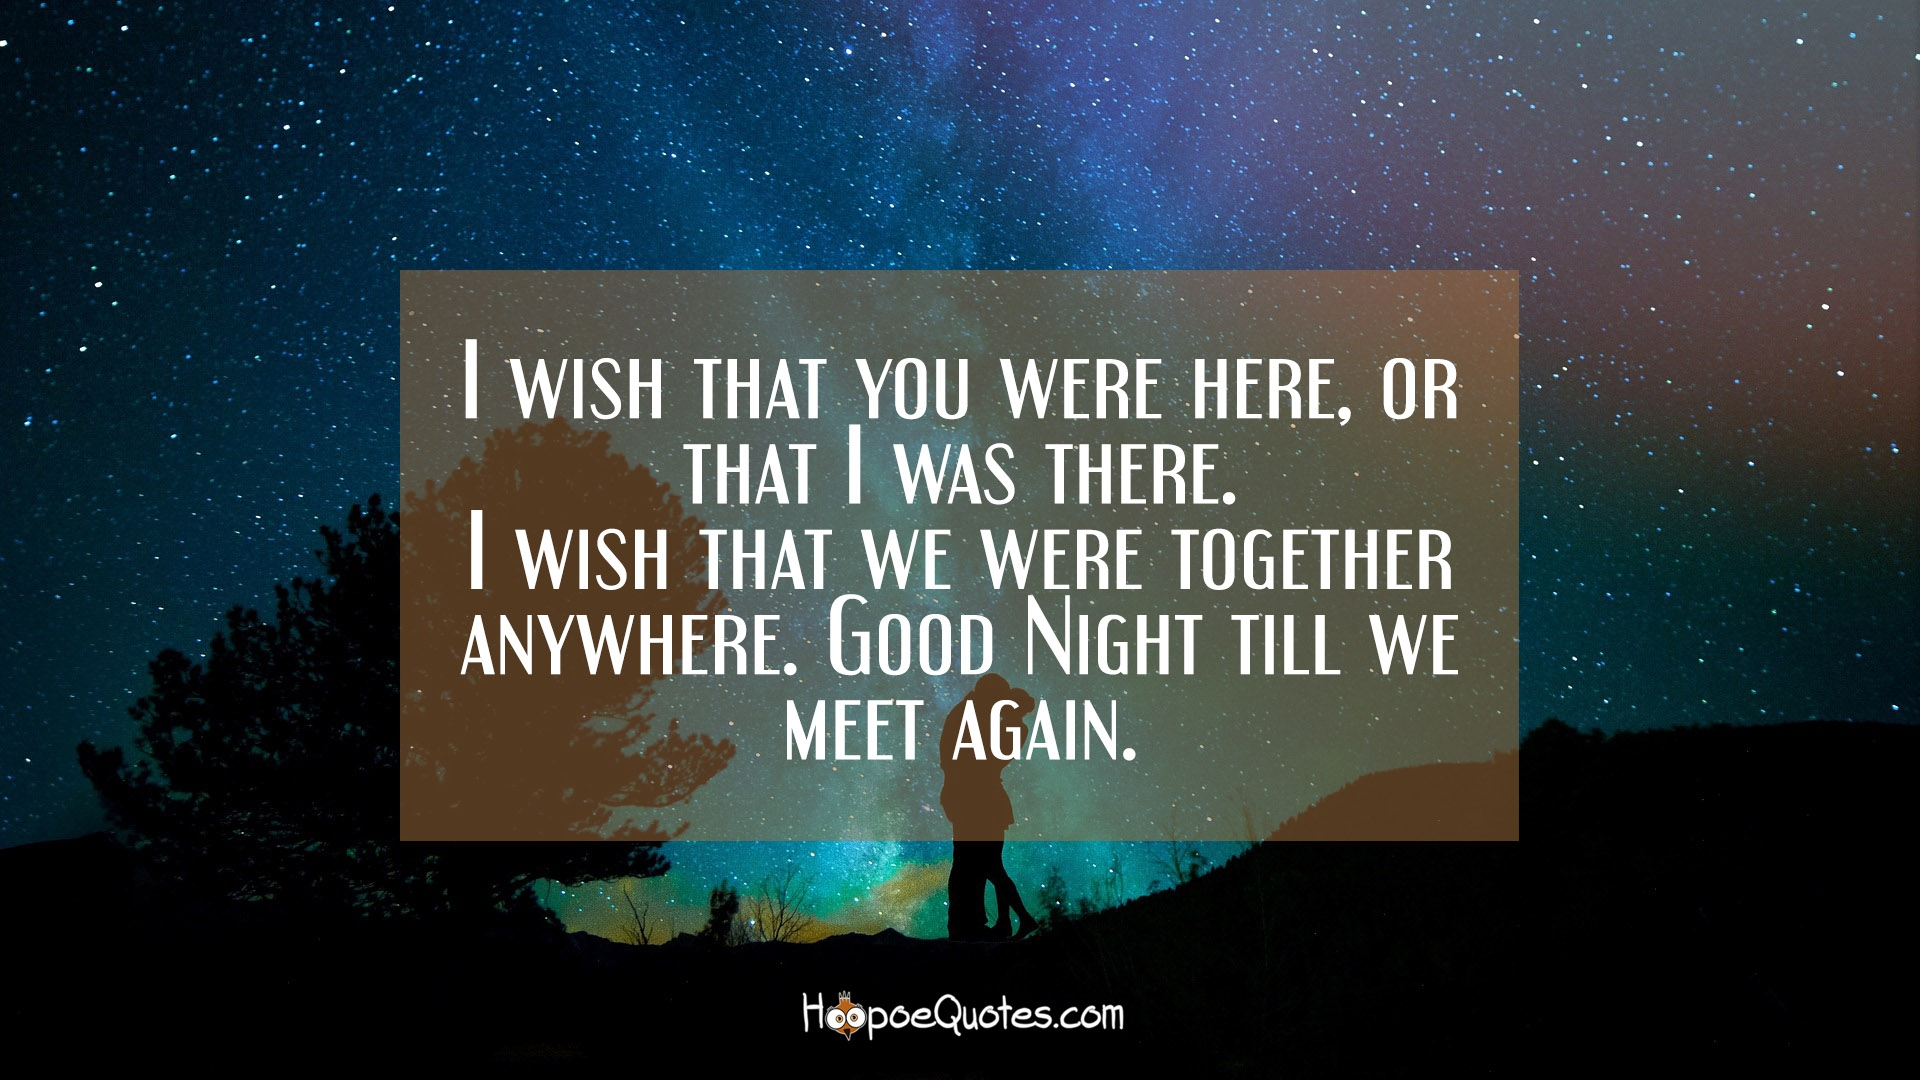 Wish You Were Here Quotes Good Night Messages  Hoopoequotes